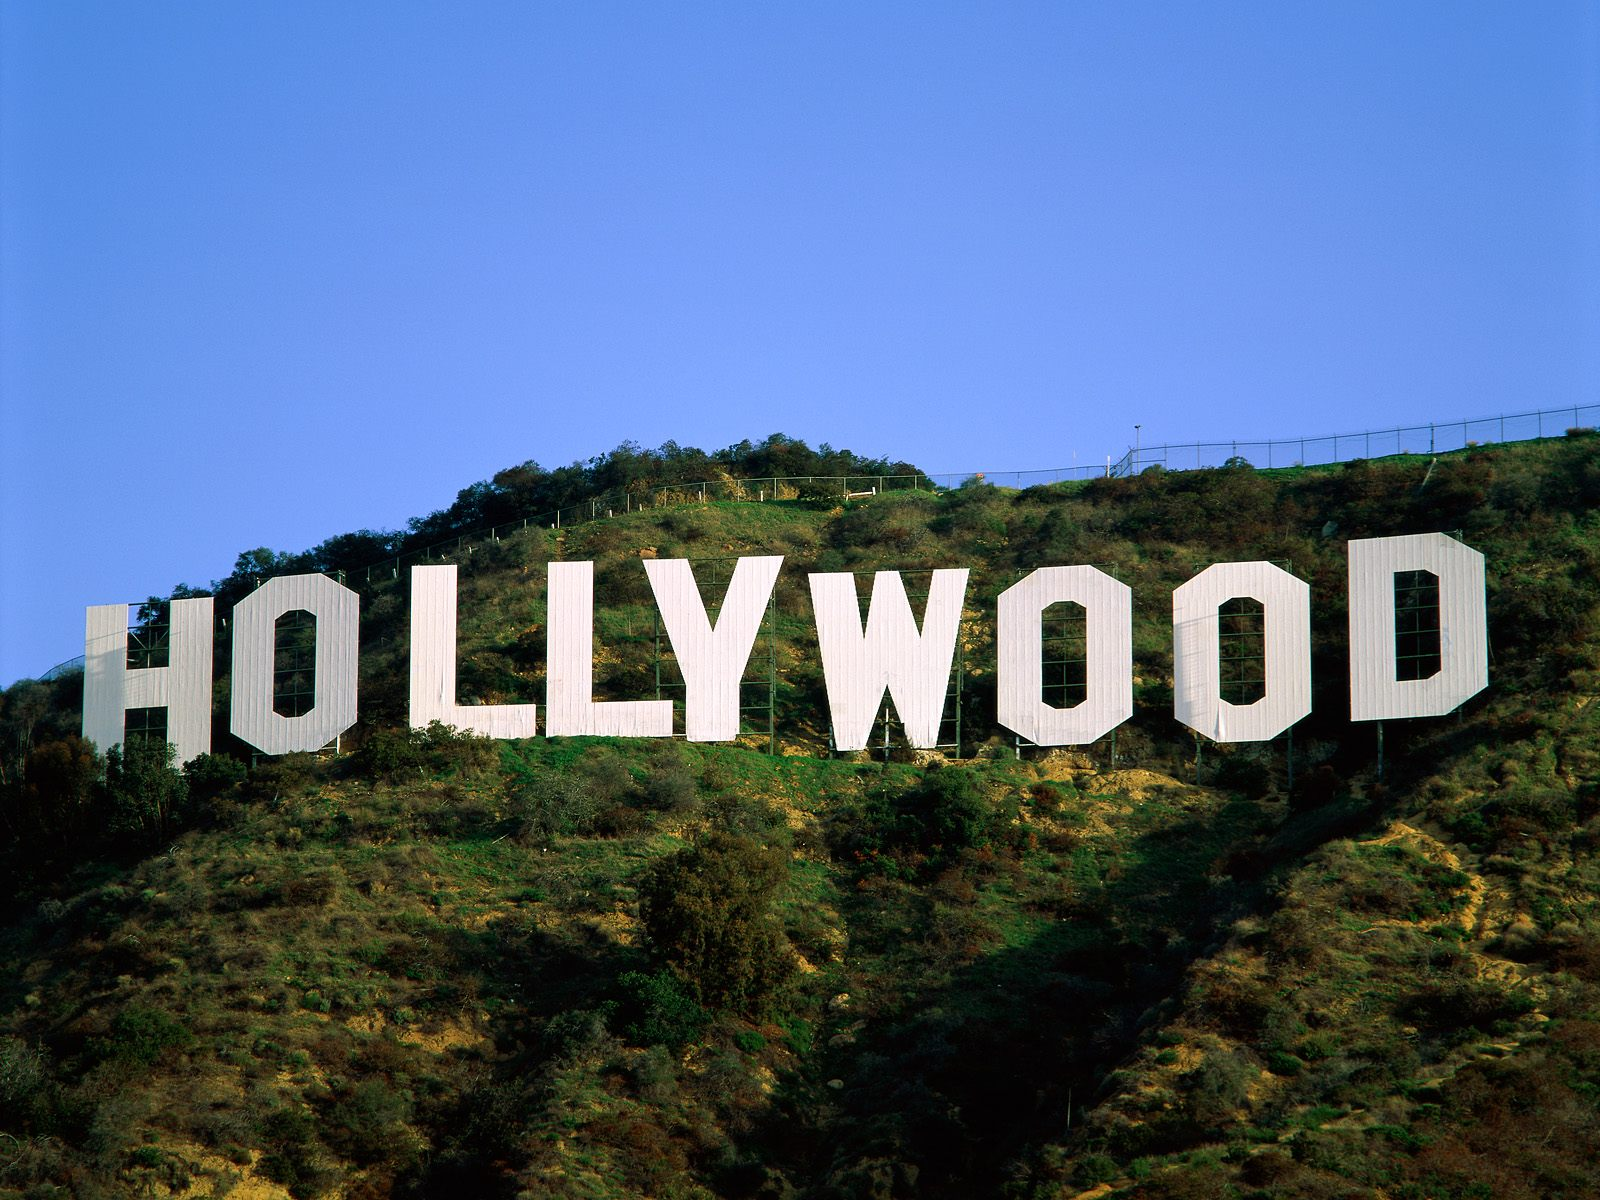 Hollywood 1600 x 1200